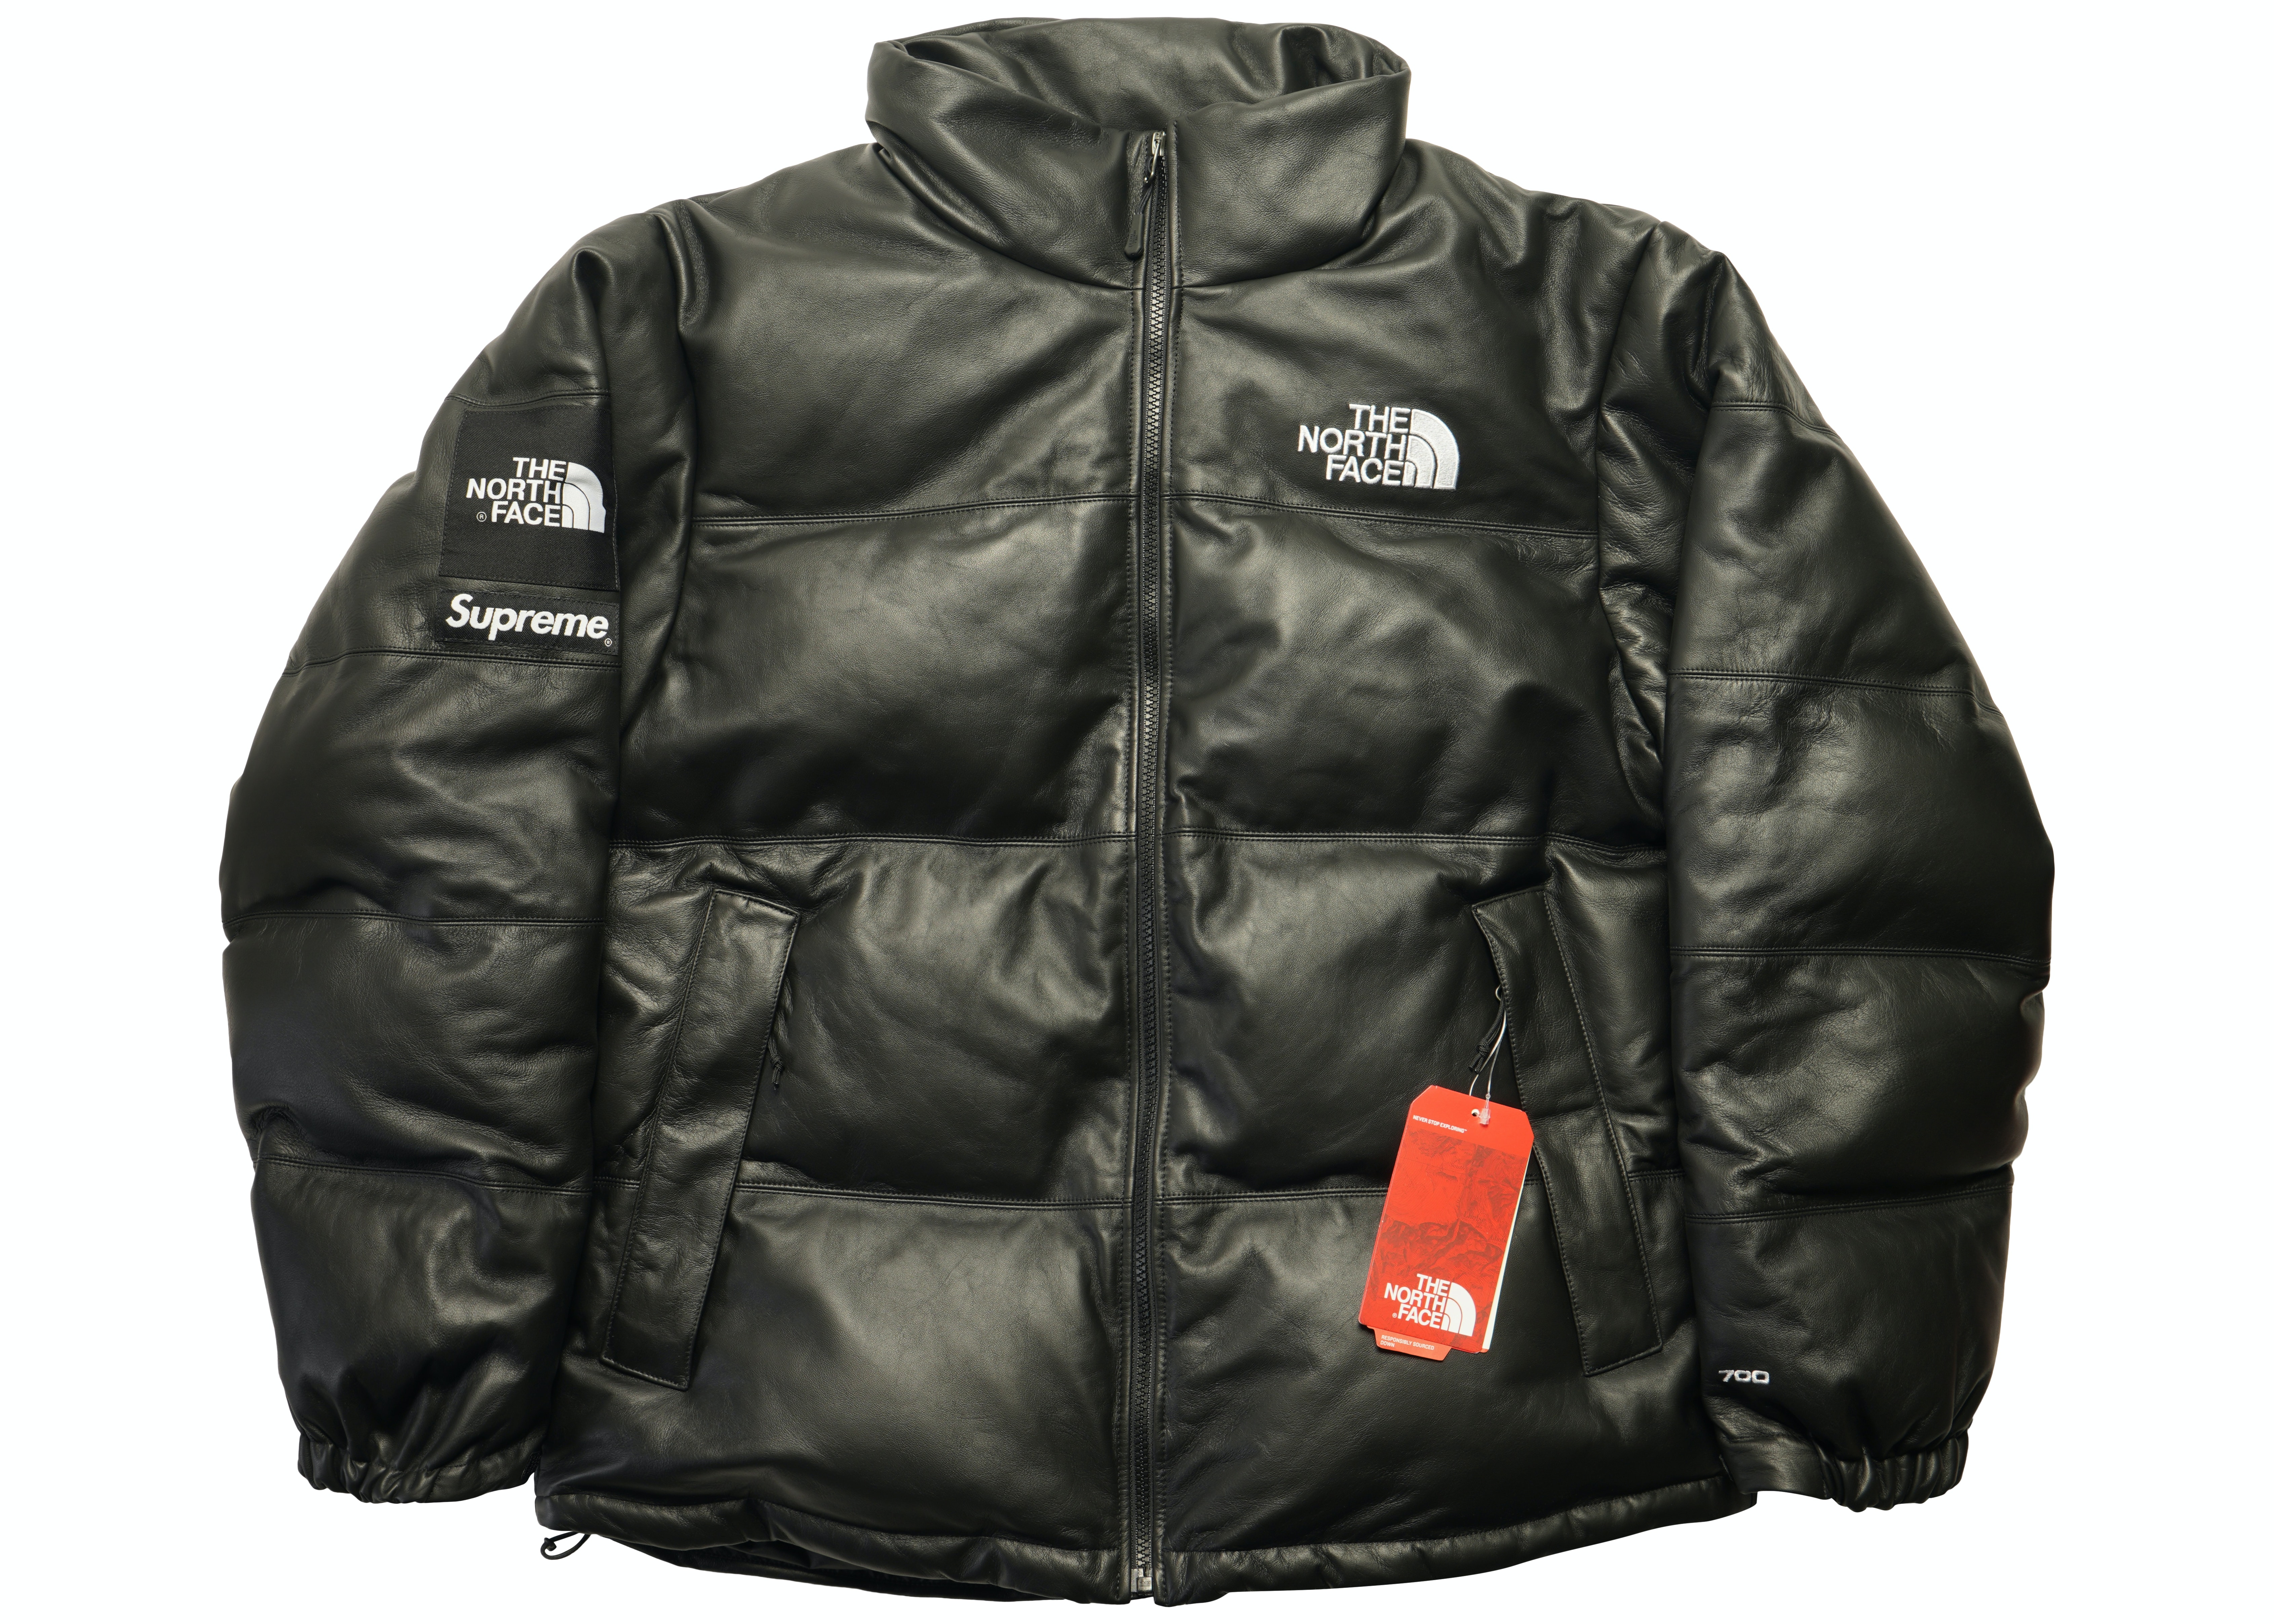 afa9cfc4a Clothes for women: North face supreme jacket buy